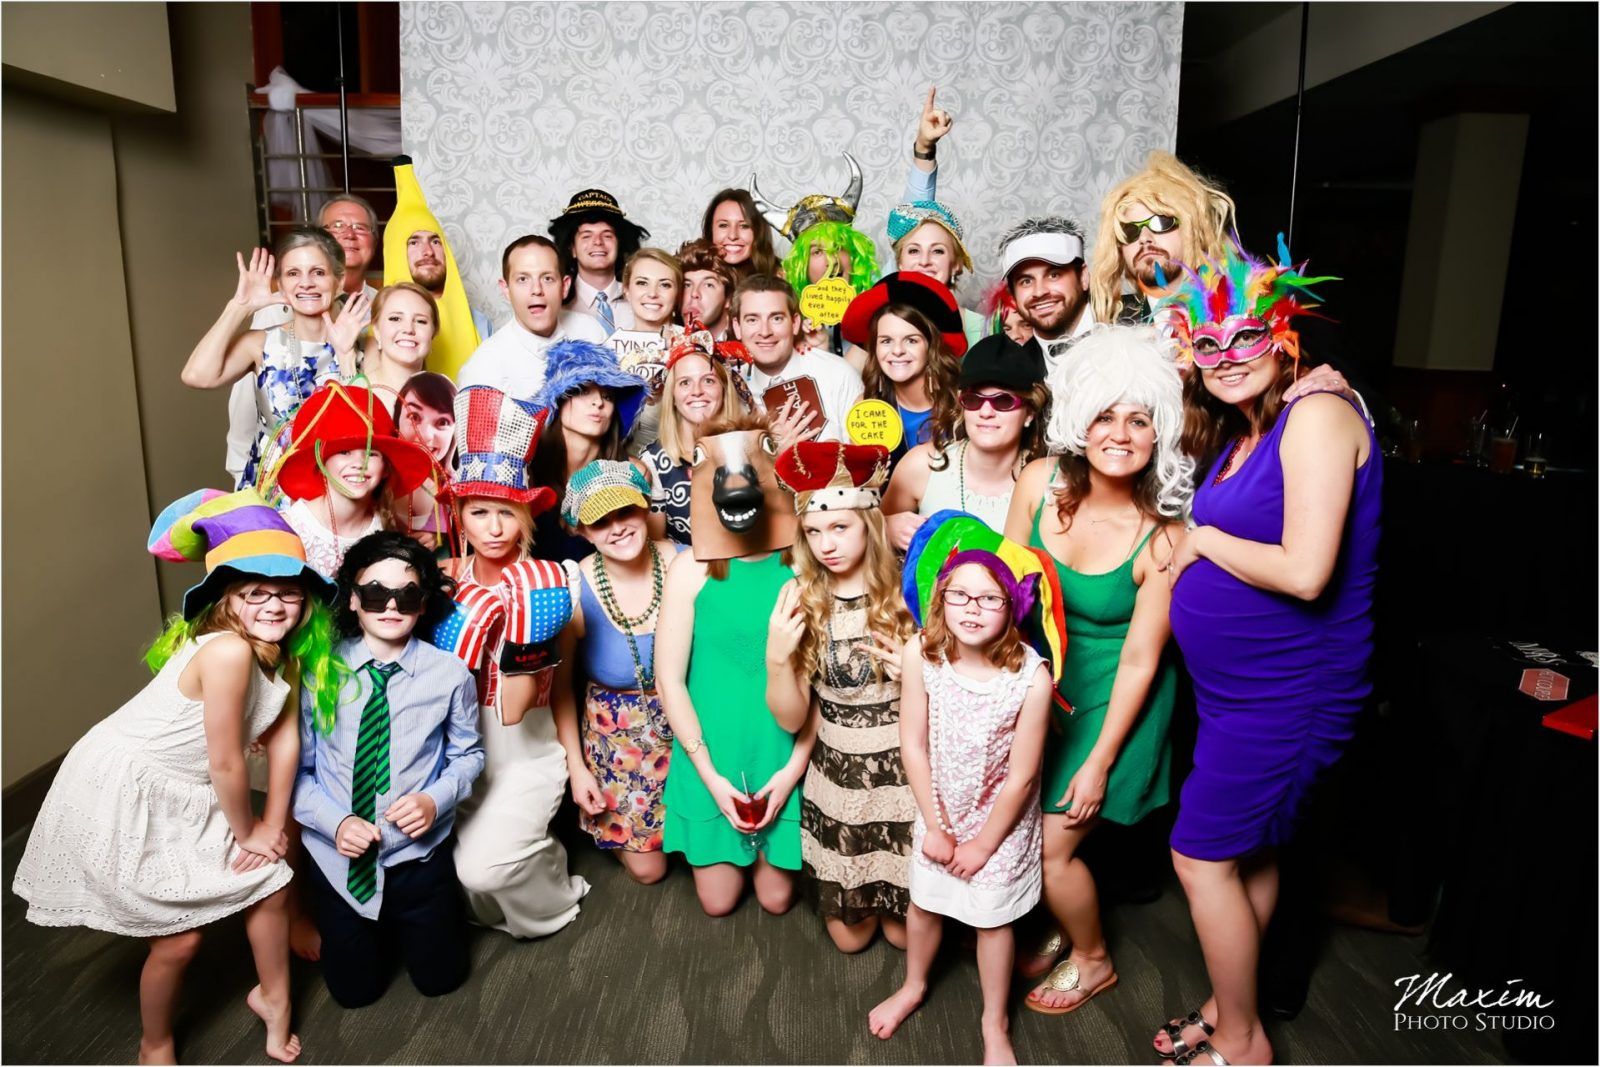 Madison Event Center Covington Kentucky Wedding Reception group unboxed photo booth